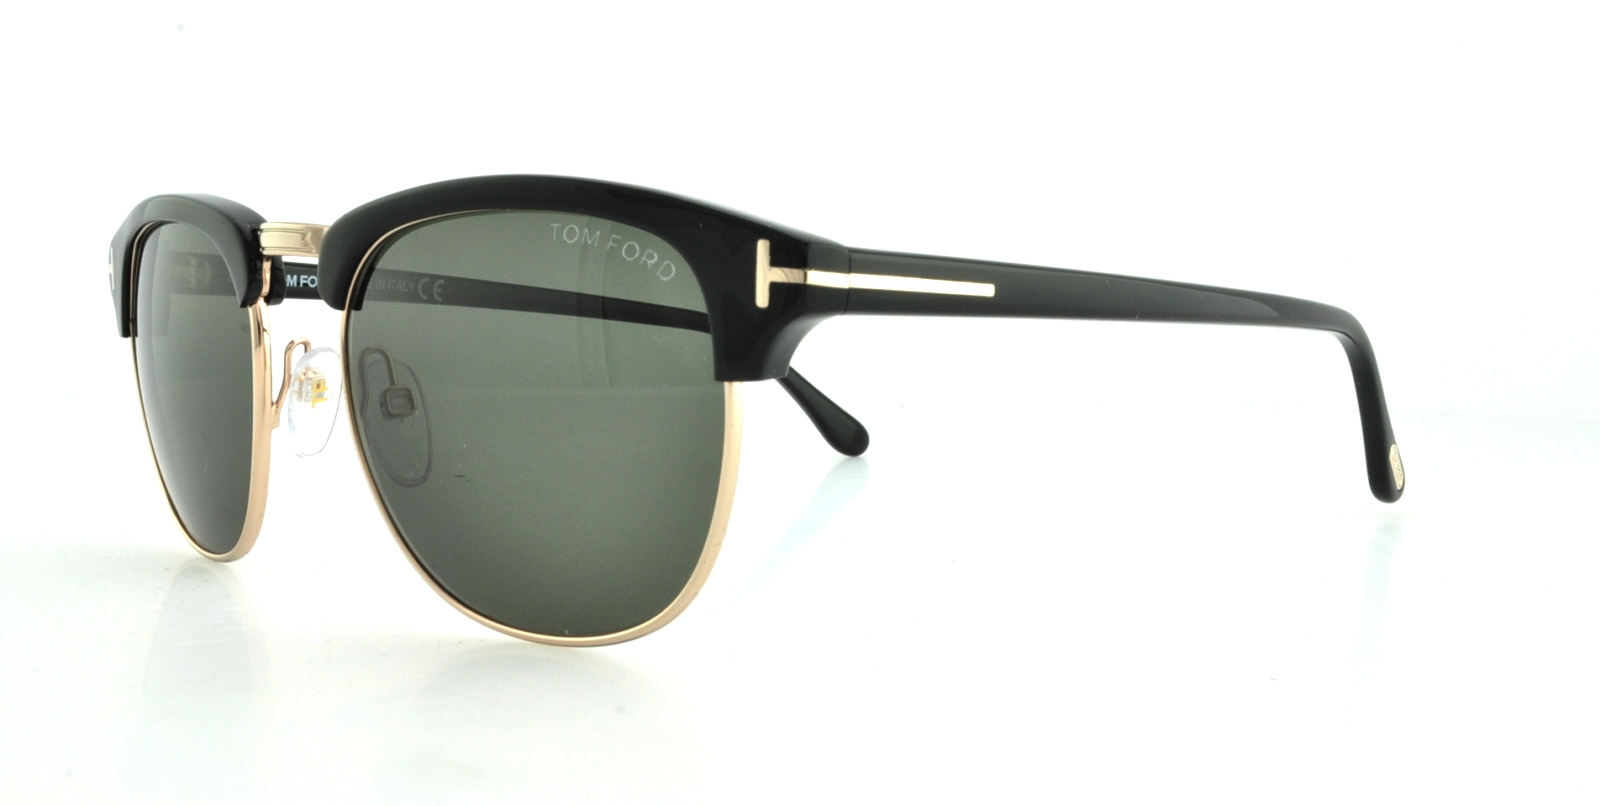 e10e831748 Details about TOM FORD Sunglasses FT0248 HENRY 05N Black 51MM